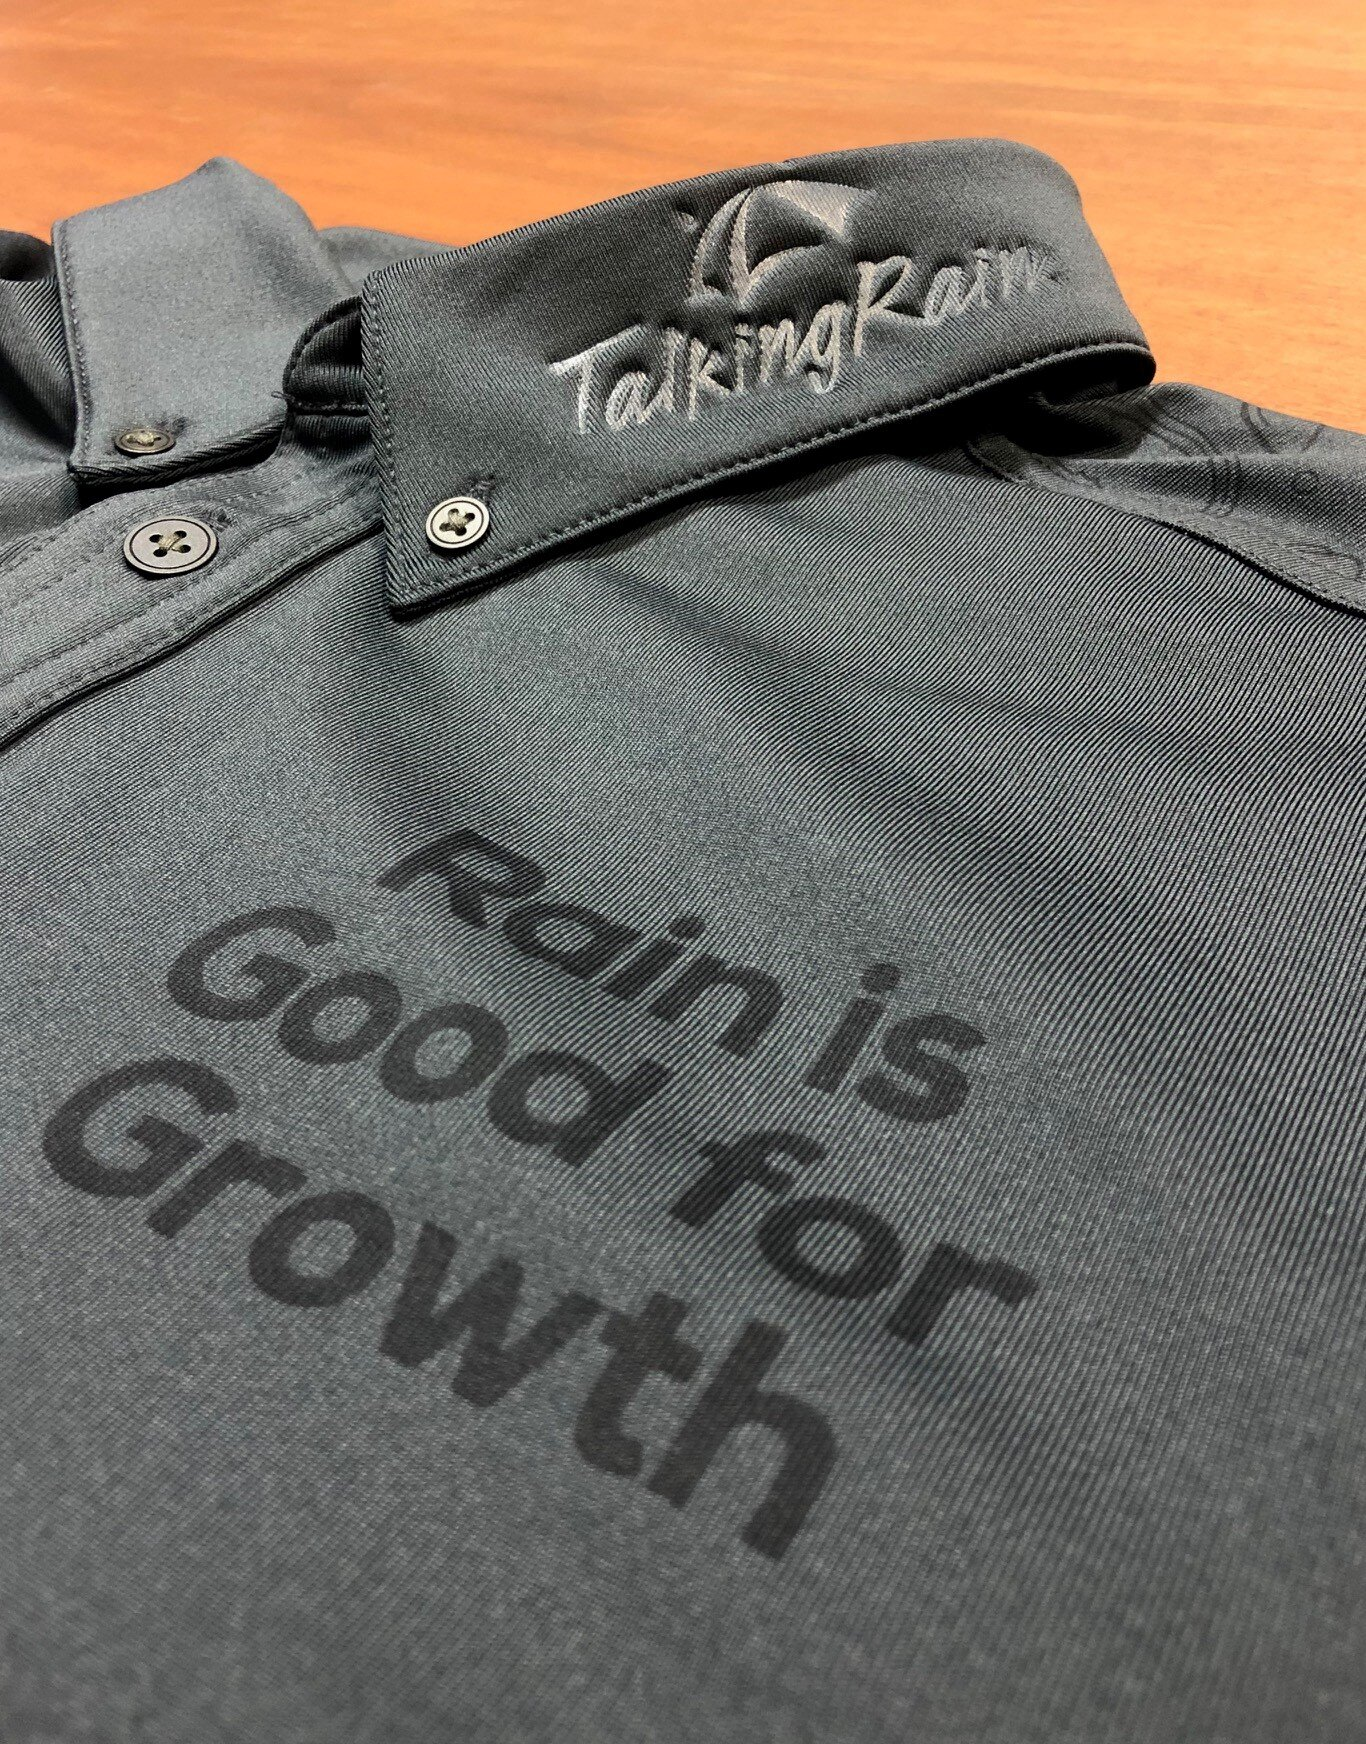 logounltd_laser_etching_embroidery_screen_printing_apparel_uniform_custom_tshirts_t_shirt_kirkland_bellevue_seattle_redmond_woodinville_branded_merchandise_promotional_products_logo_unltd_talkig_rain_water (1).jpg